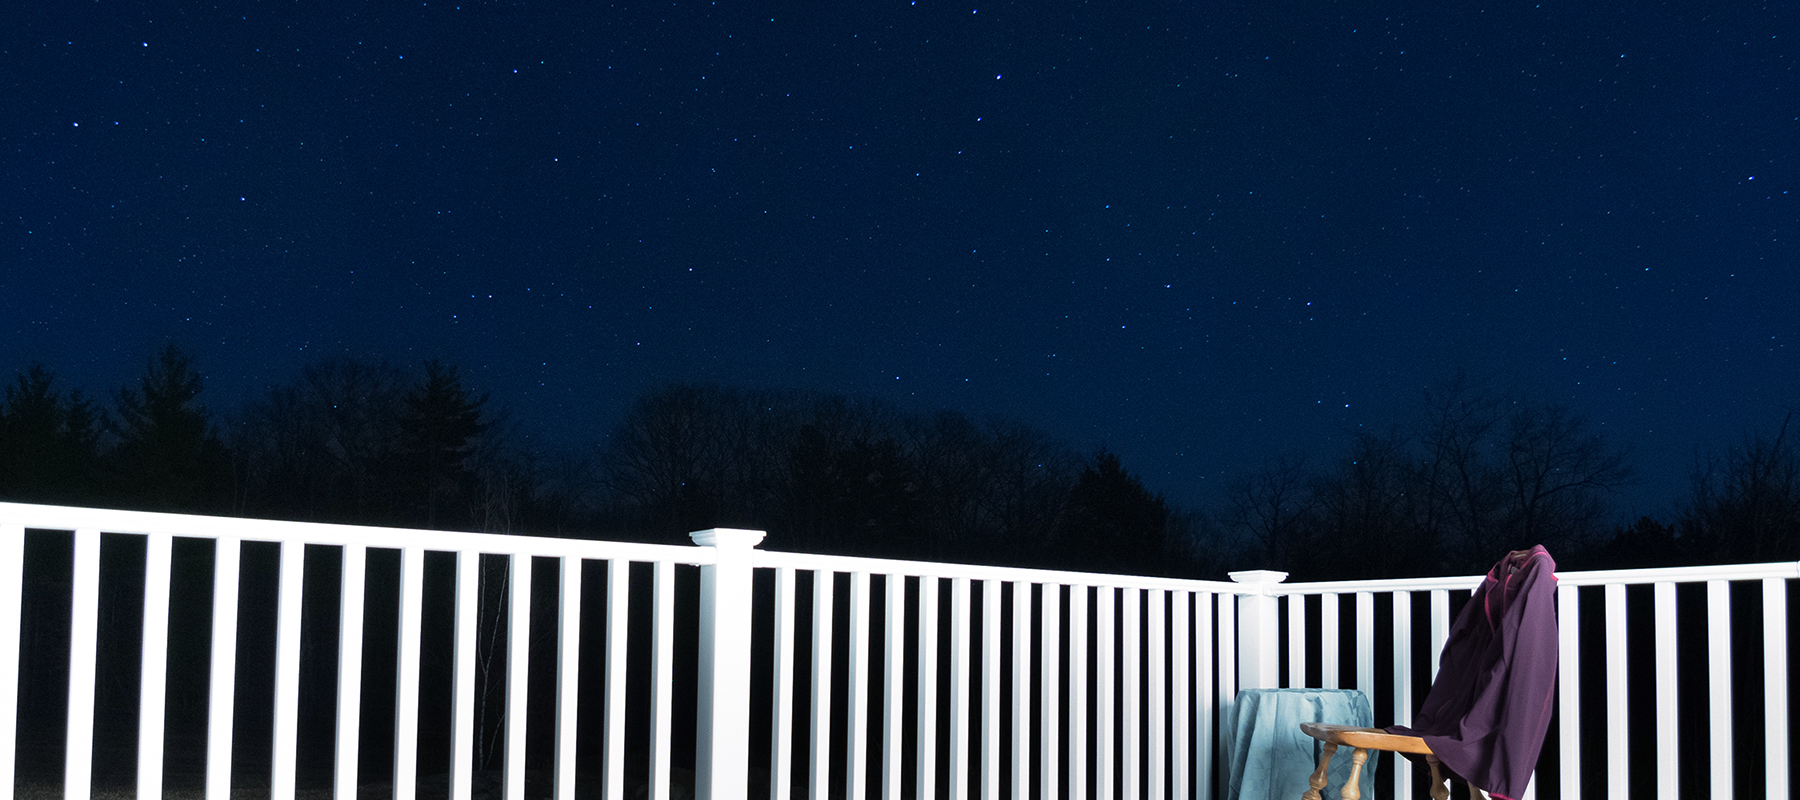 empty chair on deck looking up at stars